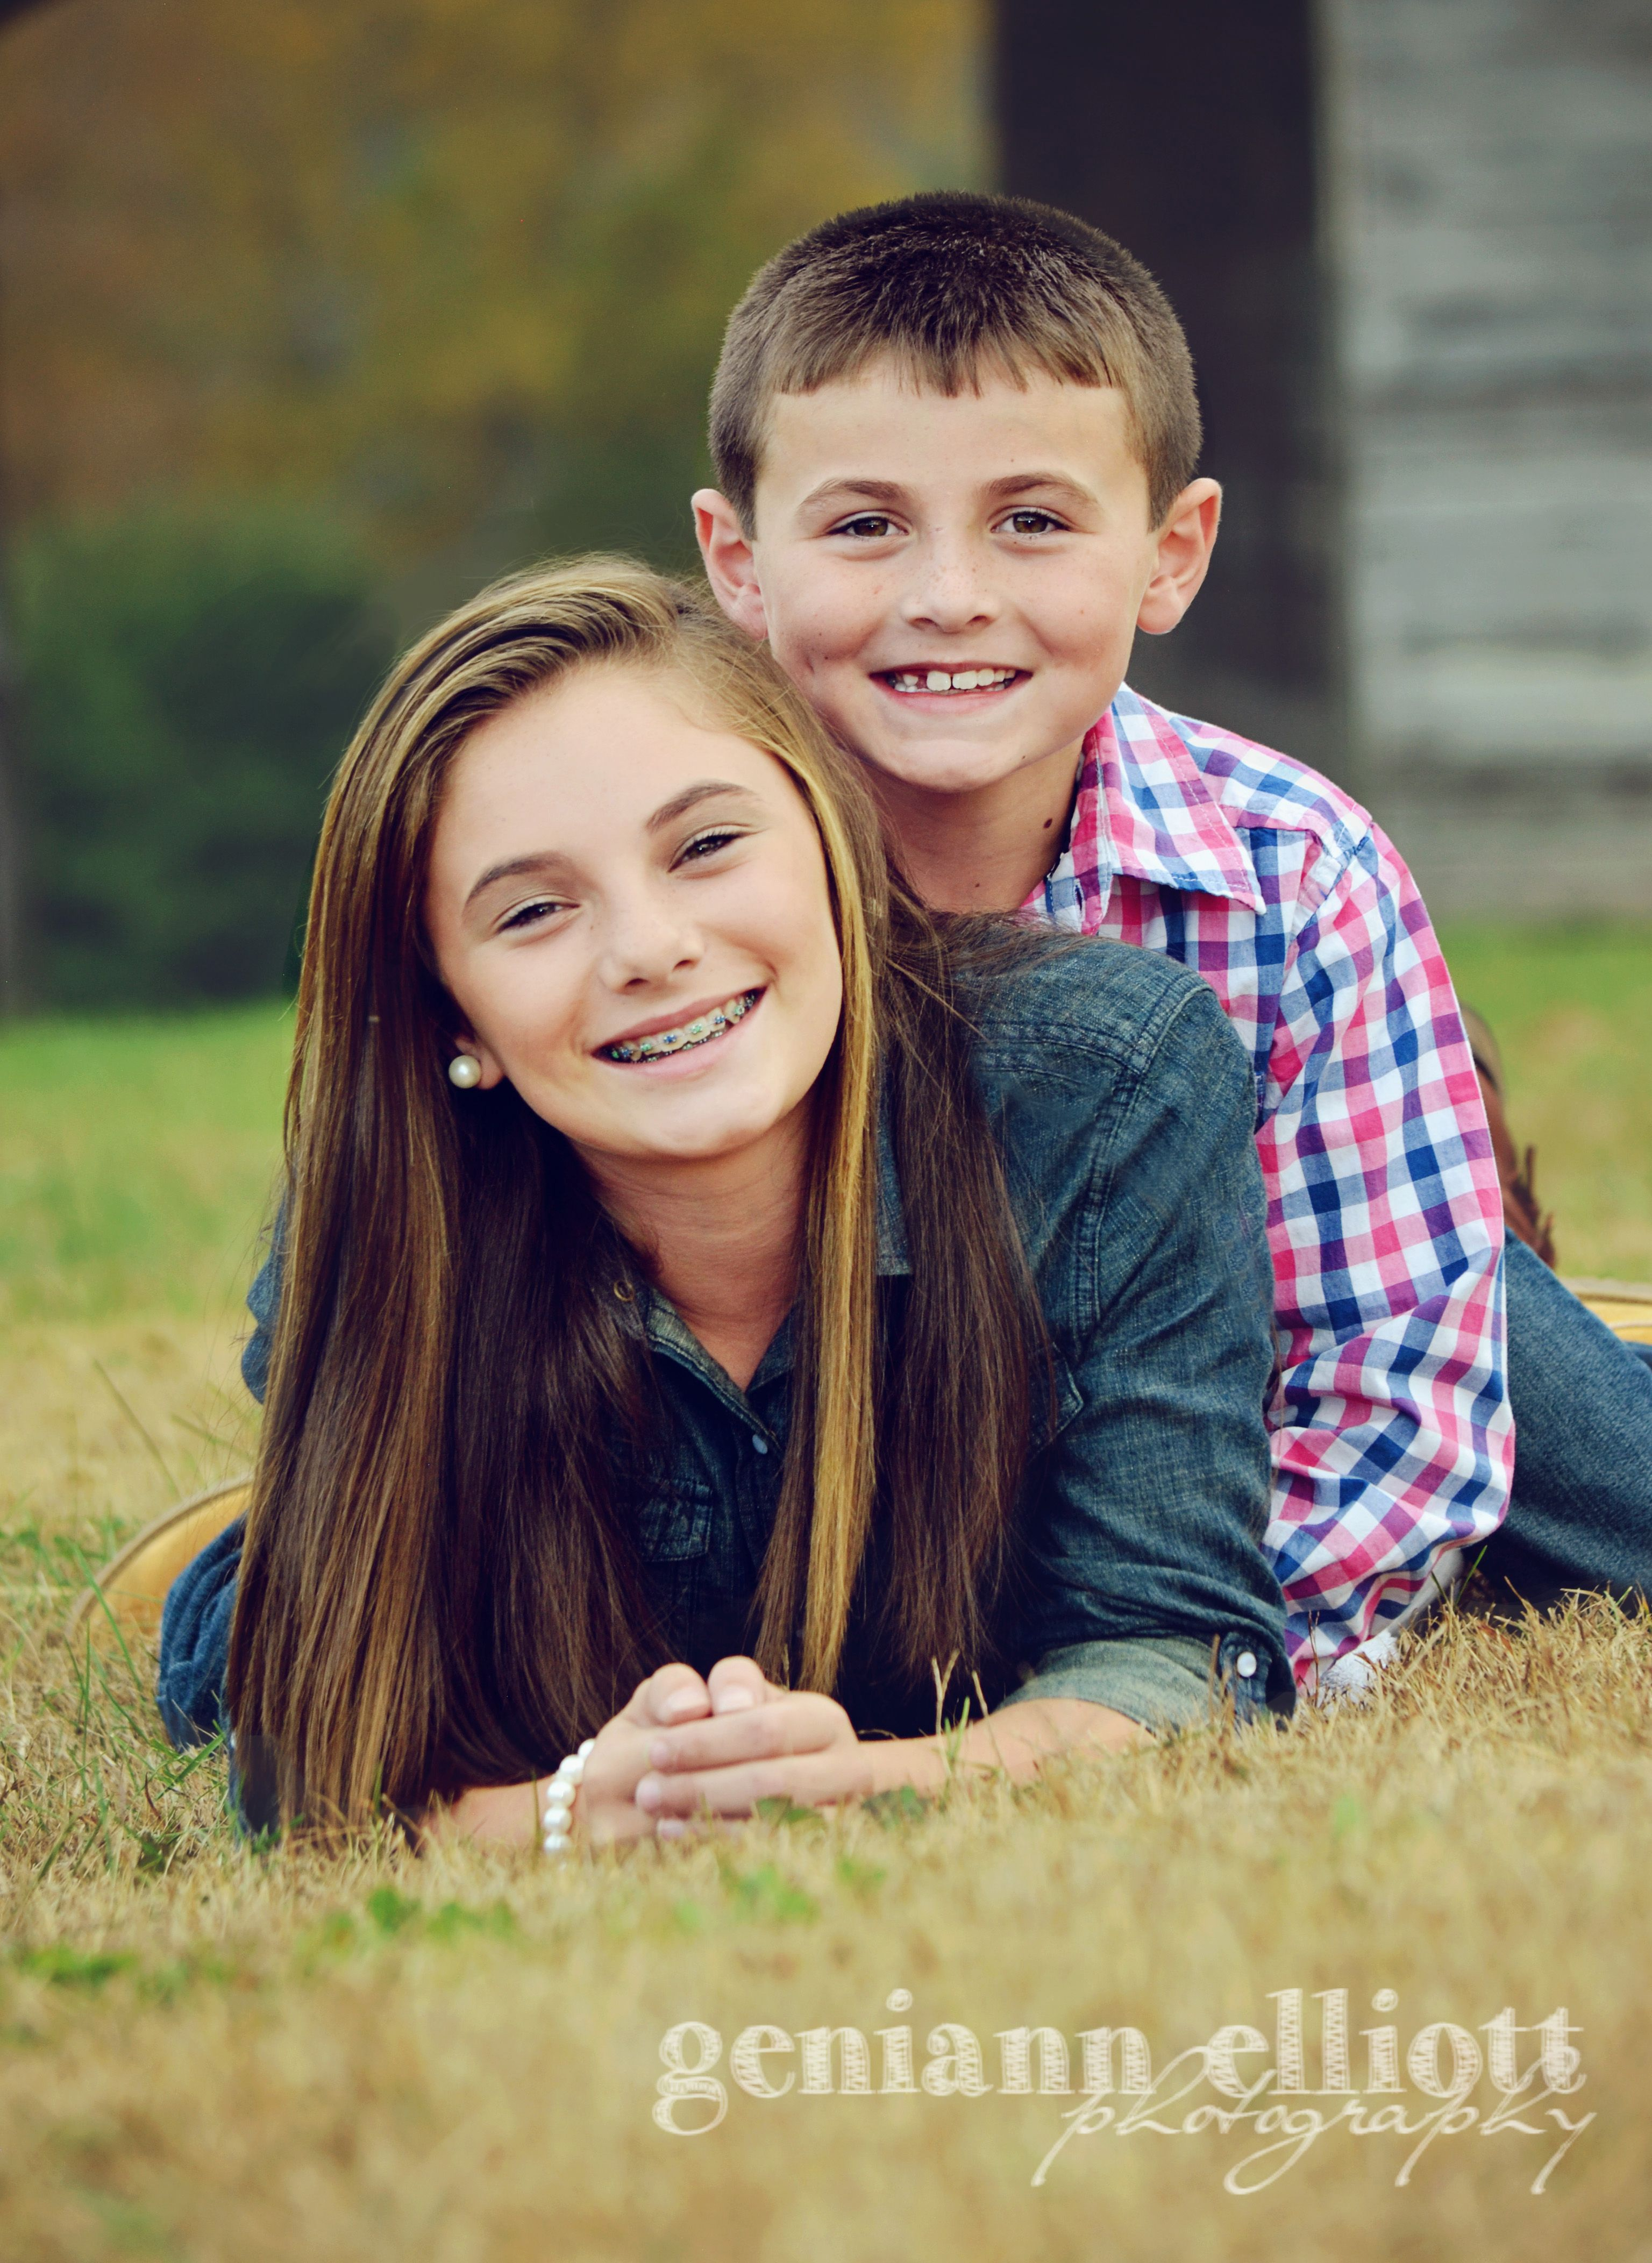 Cute Sibling Pose Posing Kids Fun Pose Children Sibling Photography Big Sister Little Brother Brother Sister Duo Wake Forest Nc